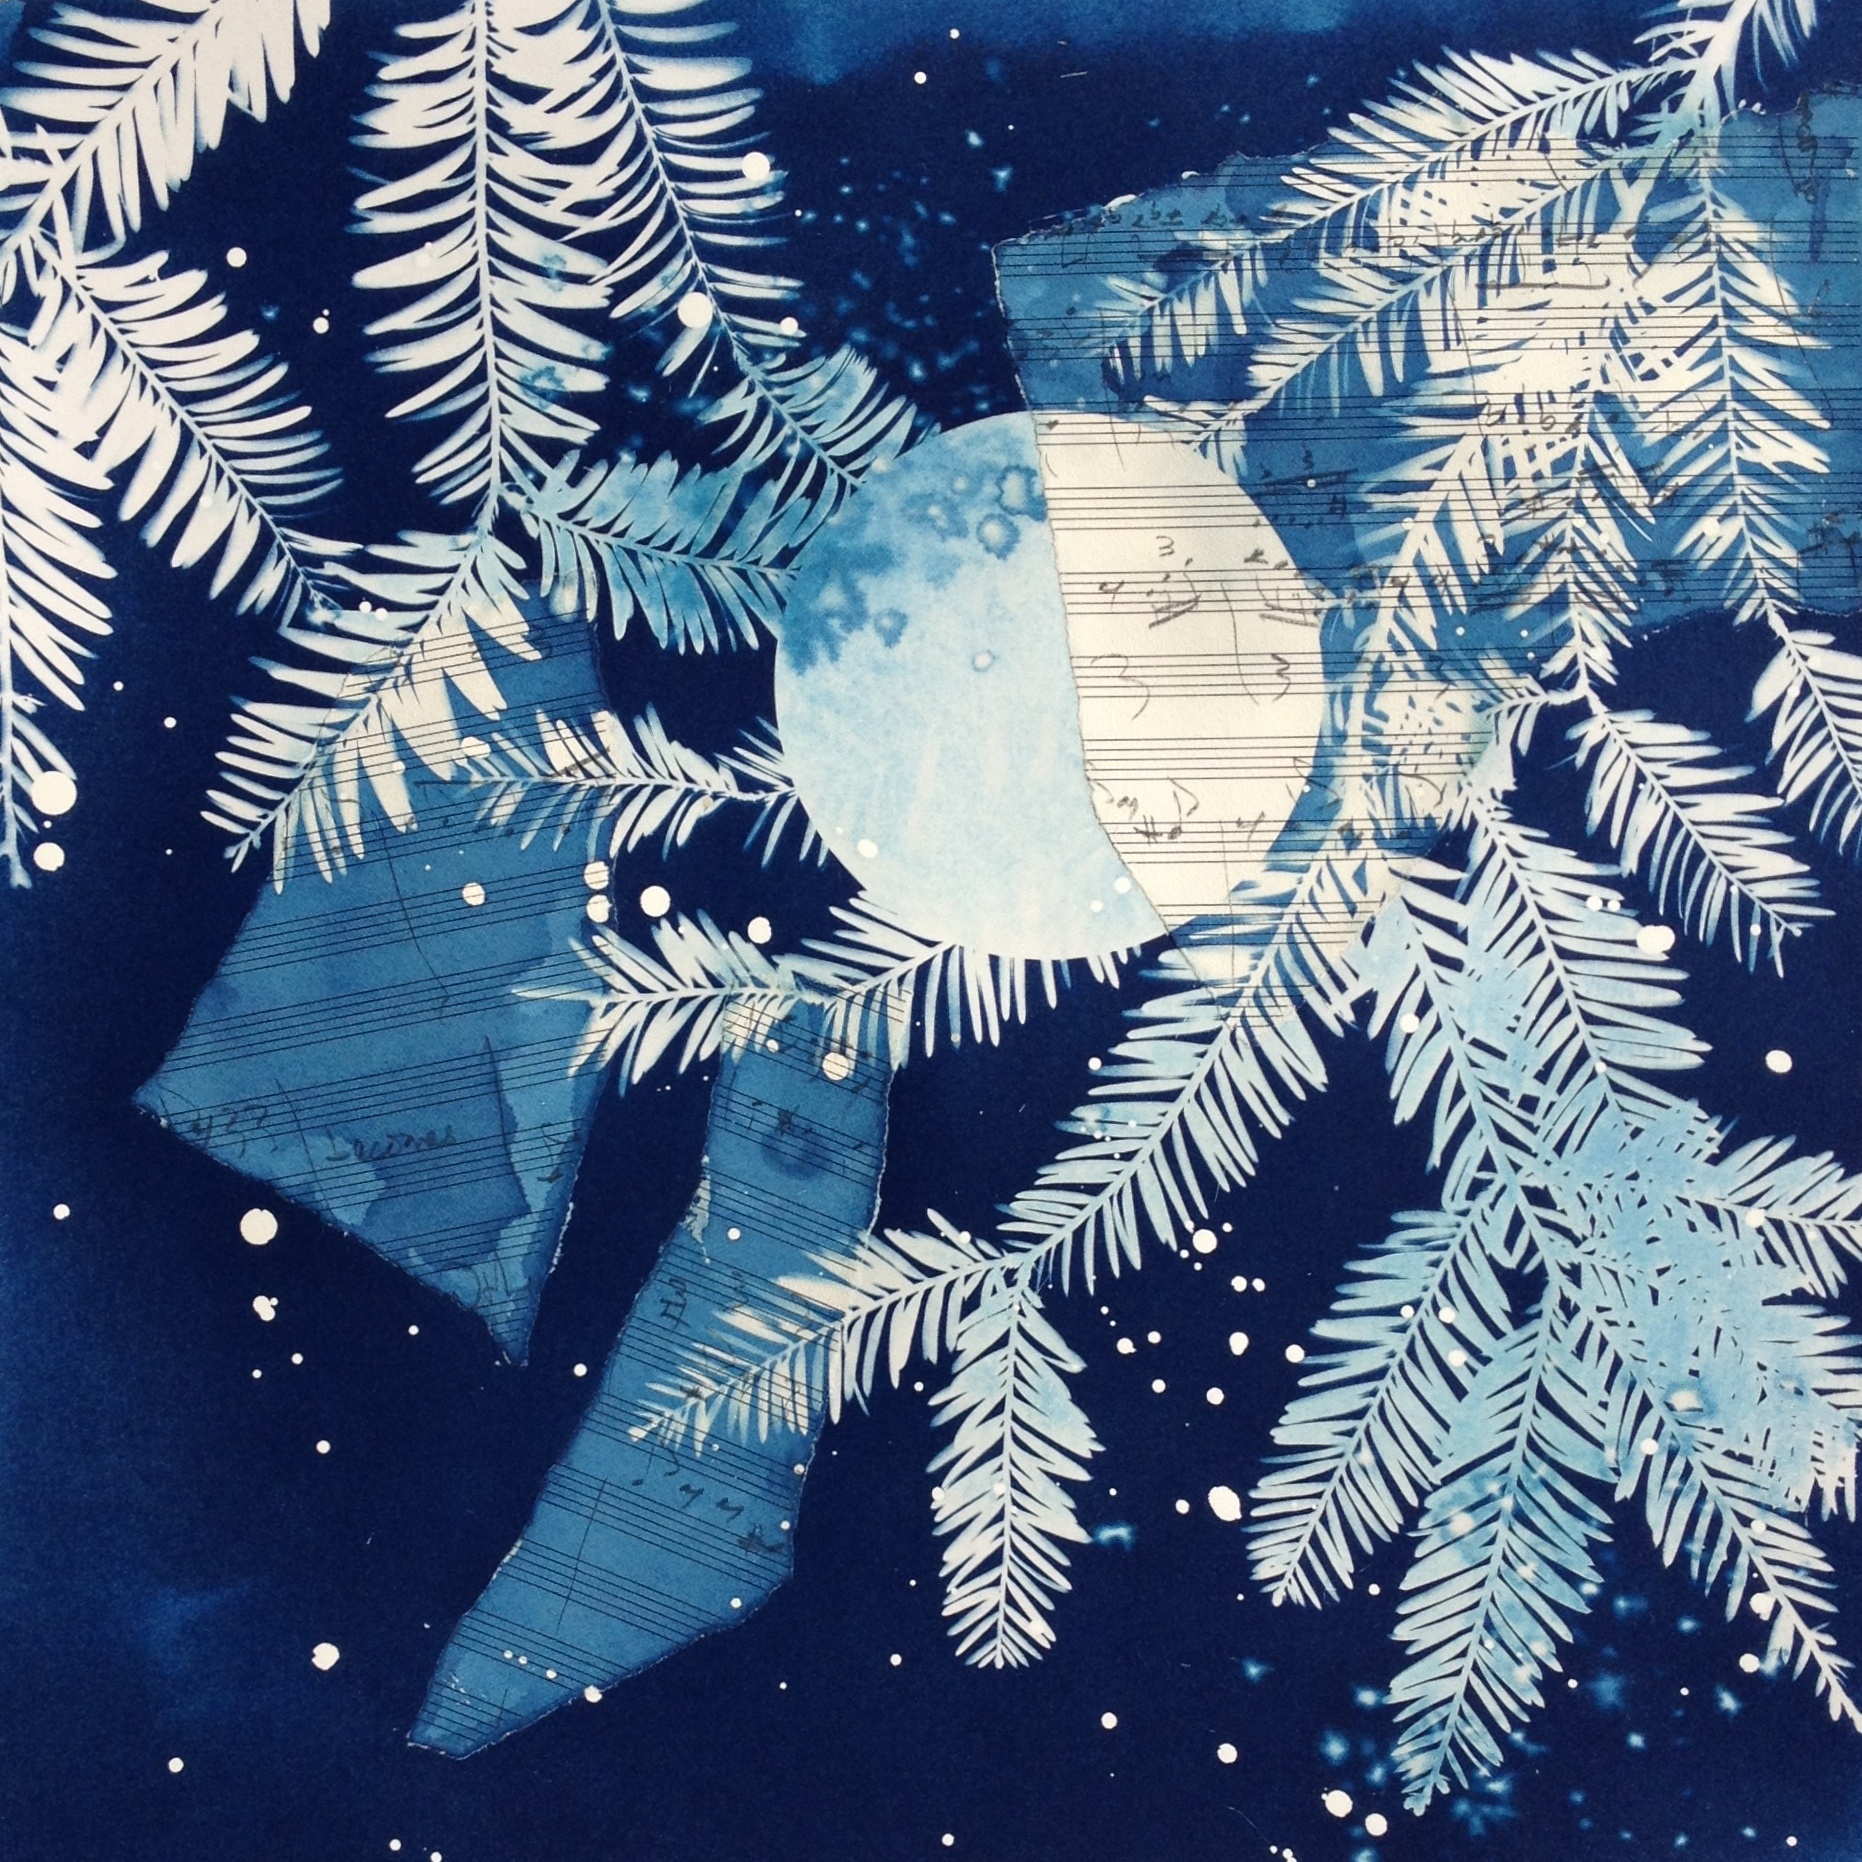 Longstock Moon  | cyanotype with collage | 20 x 20 | SOLD,  prints available